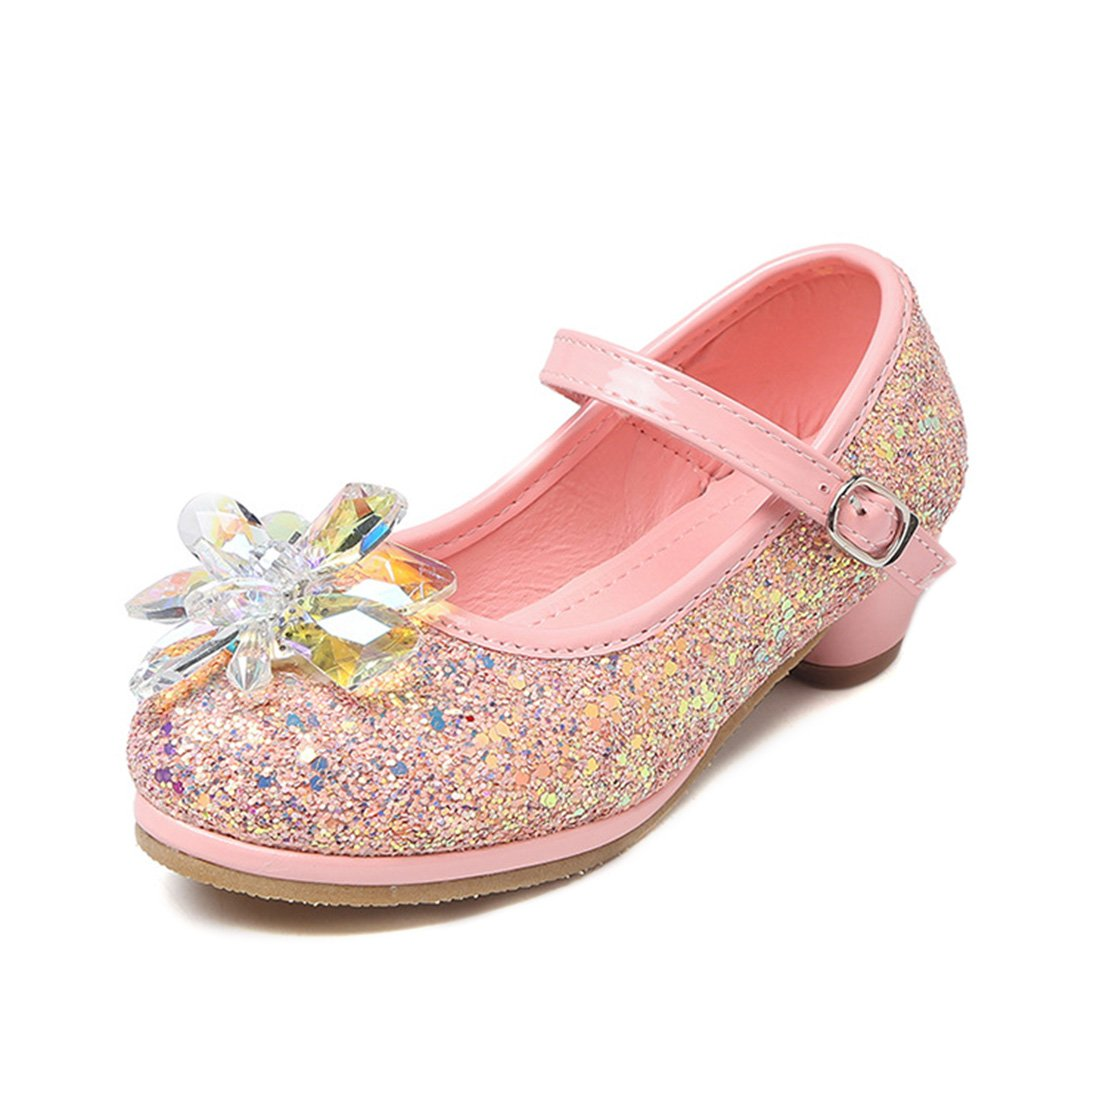 YIBLBOX Girls Kids Toddler Dress up Wedding Cosplay Princess Shoes Glitter Crystal Mary Jane Low Heel Shoes by YIBLBOX